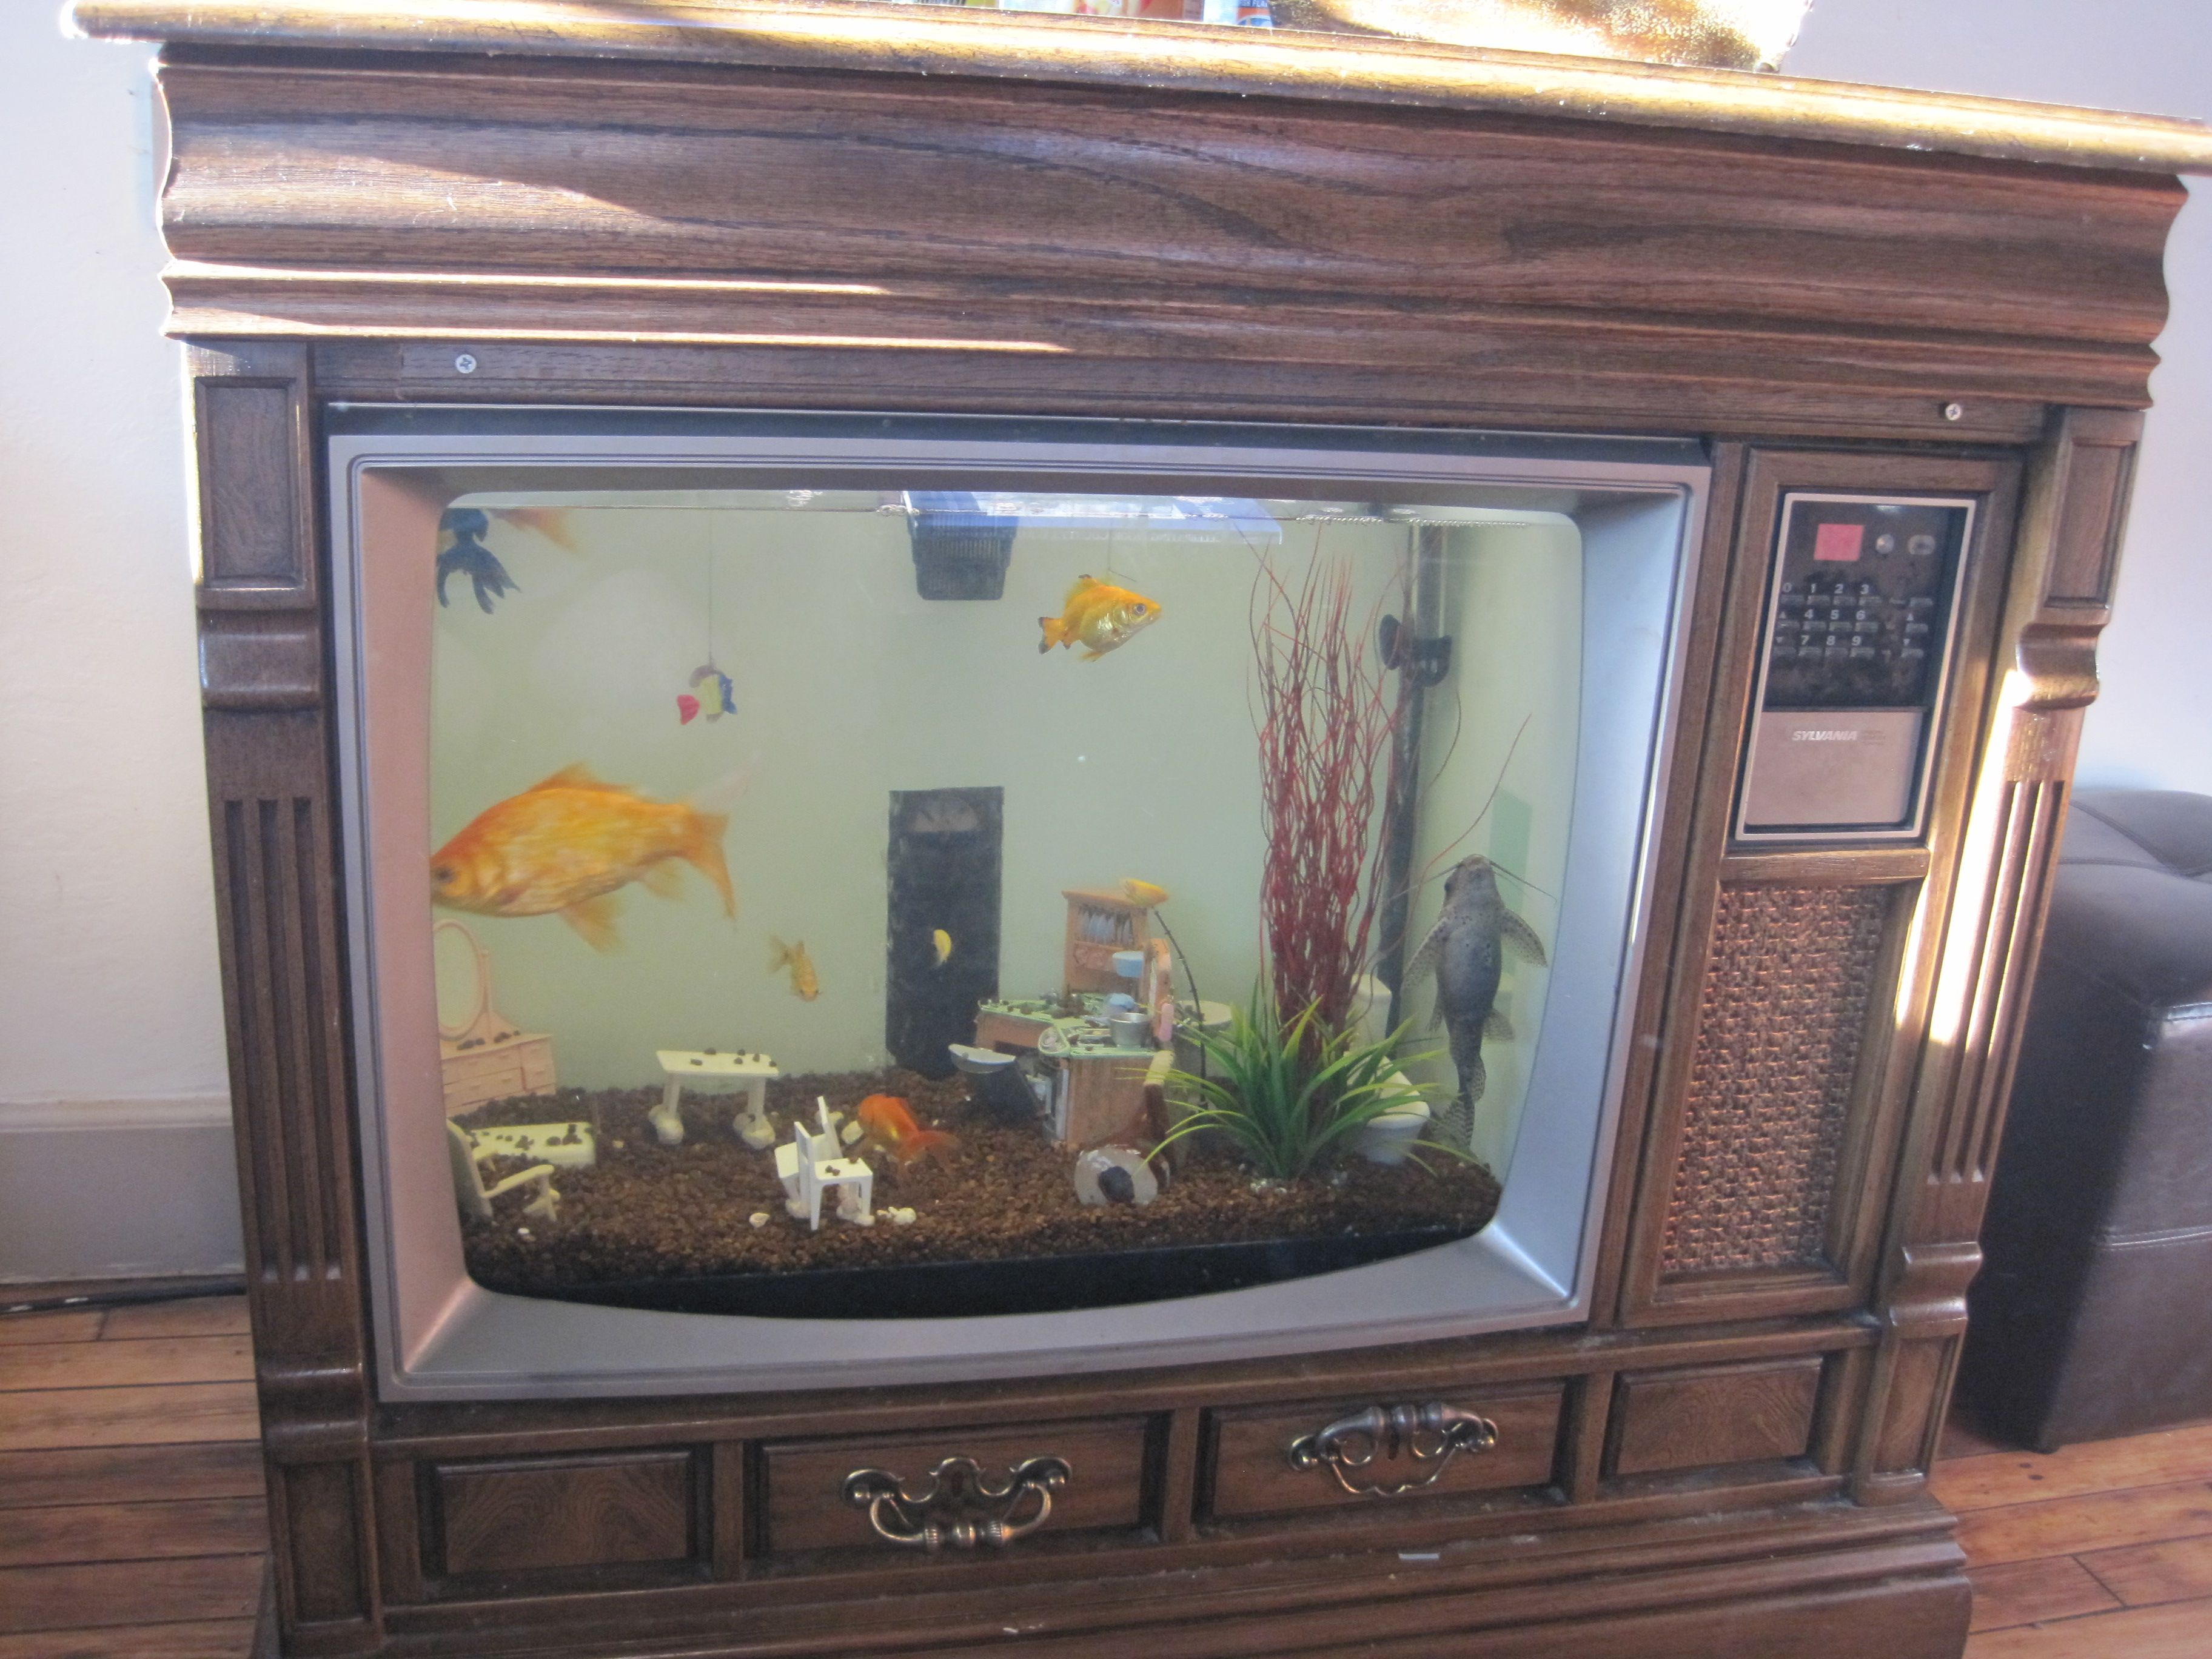 We made a old TV into a fish tank